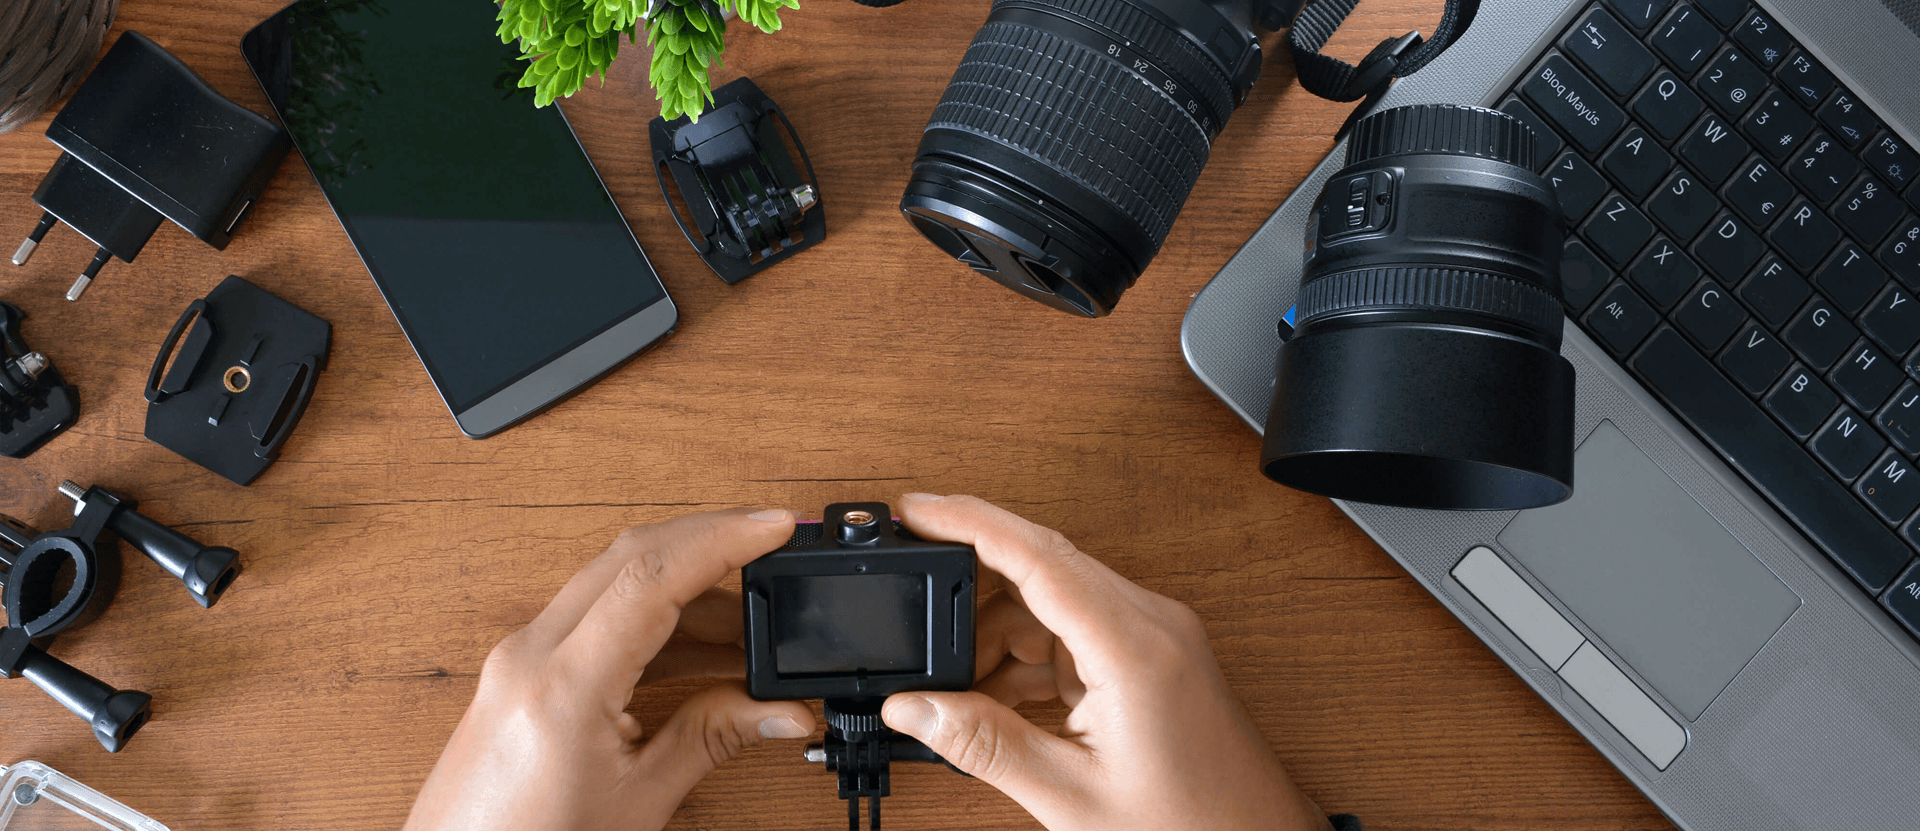 The Ultimate Equipment Guide for Doing Online Video